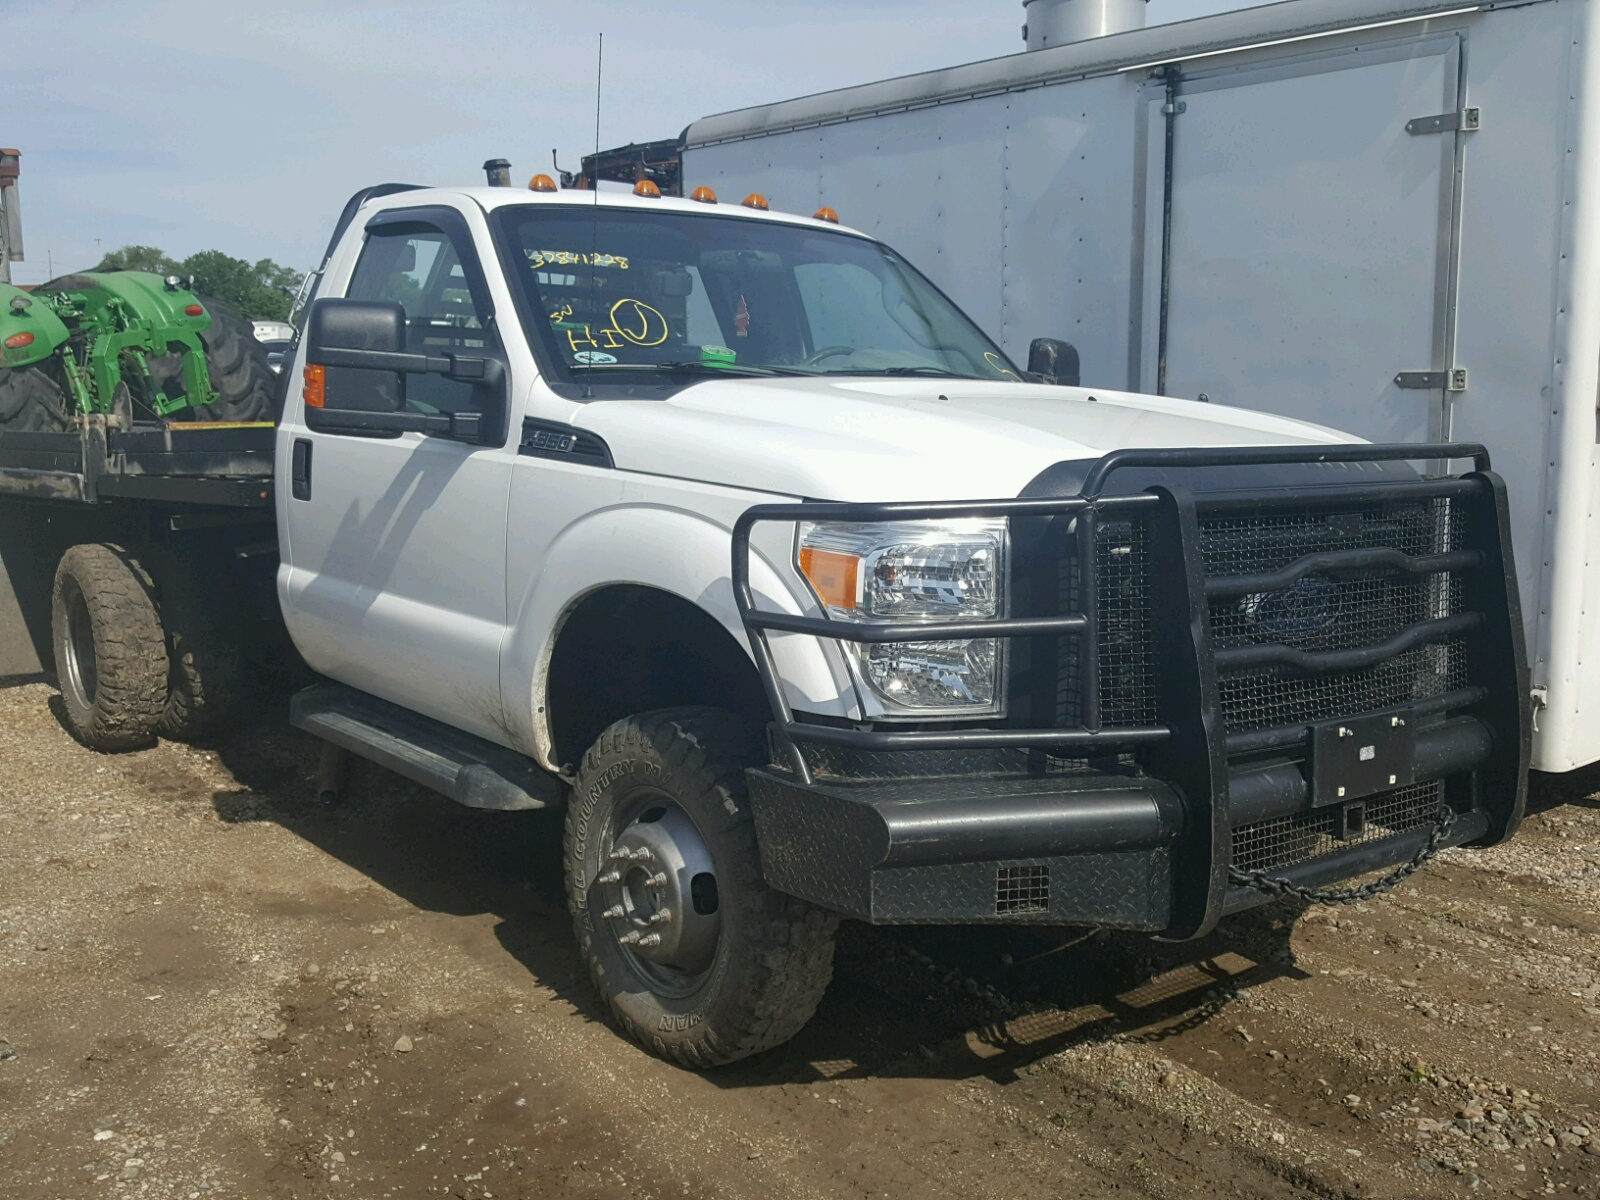 1fdrf3h69gea13483 2016 ford f350 super 6 2l left view 1fdrf3h69gea13483